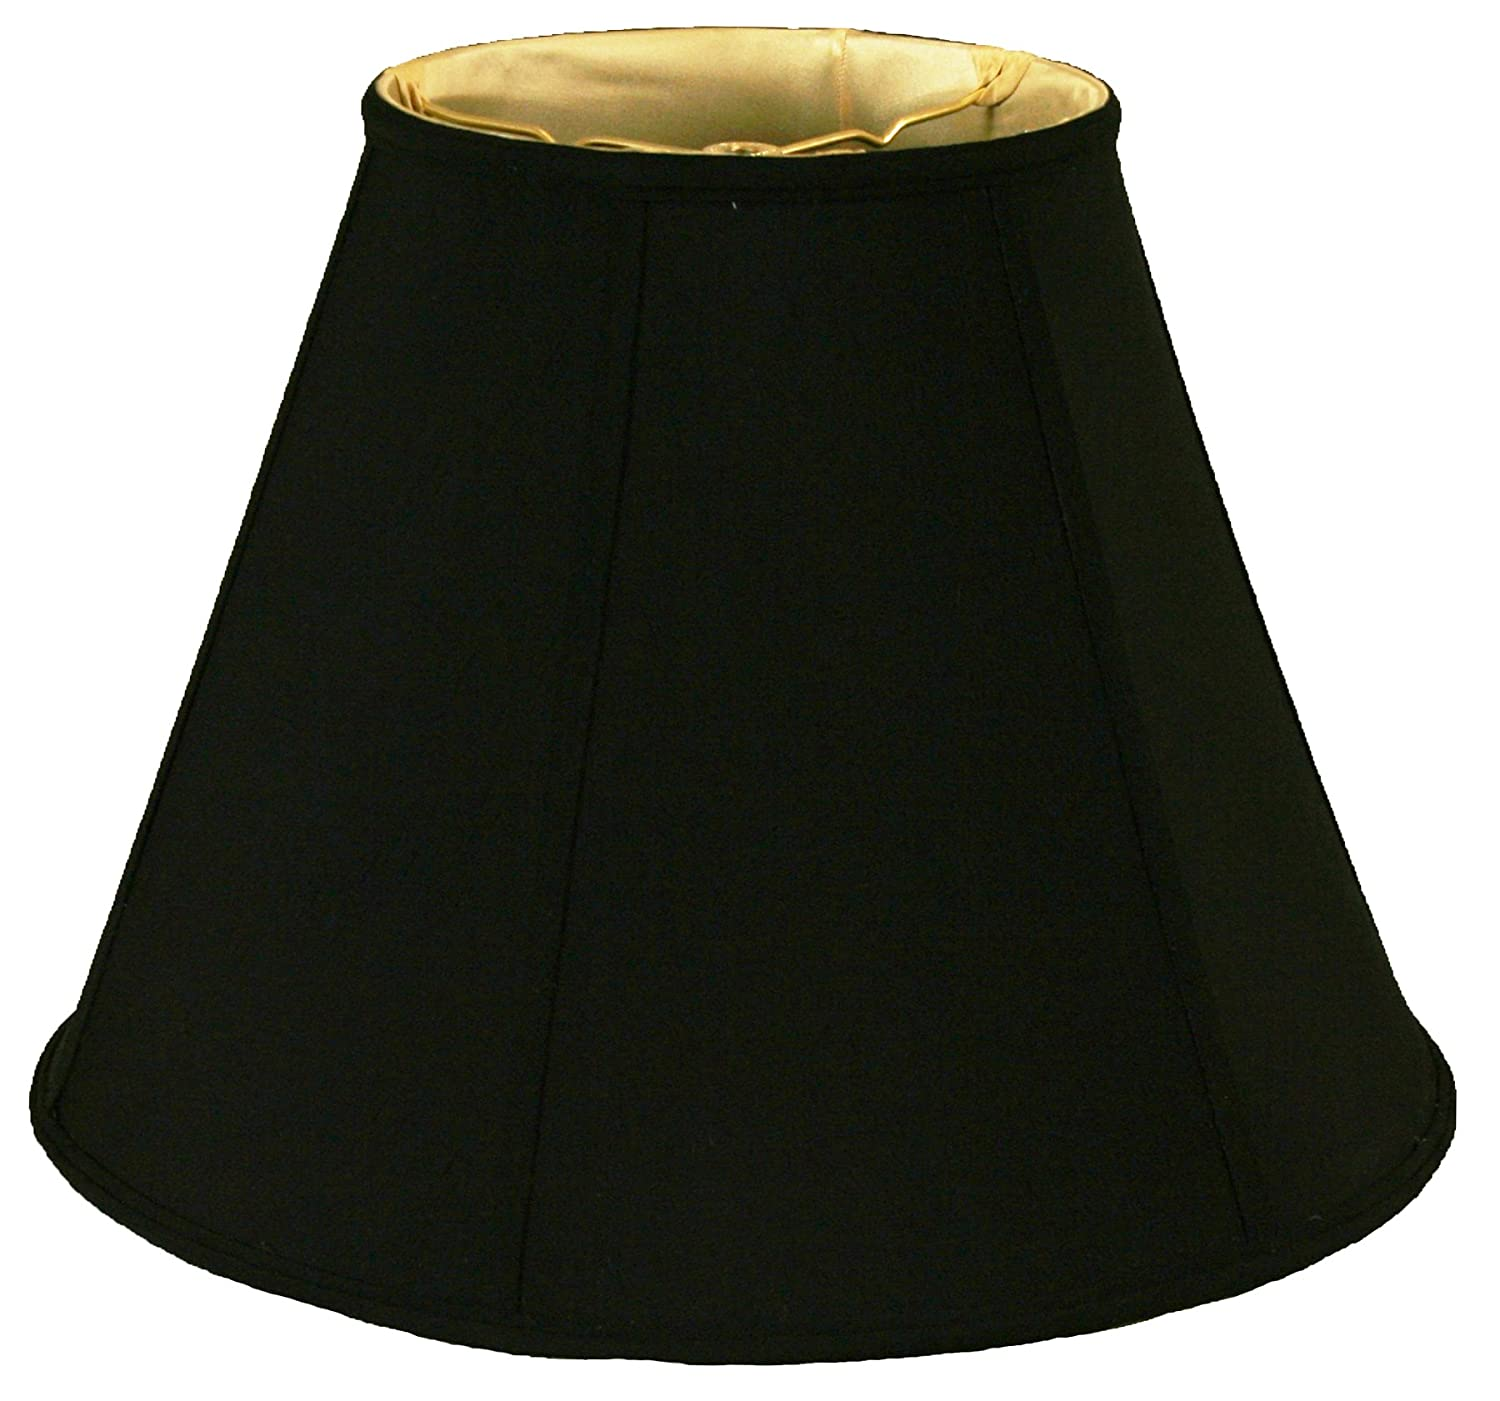 Black Royal Designs DBS-707-16LNBG 9 x 16 x 12.25 Deep Empire Lamp Shade, Linen Beige